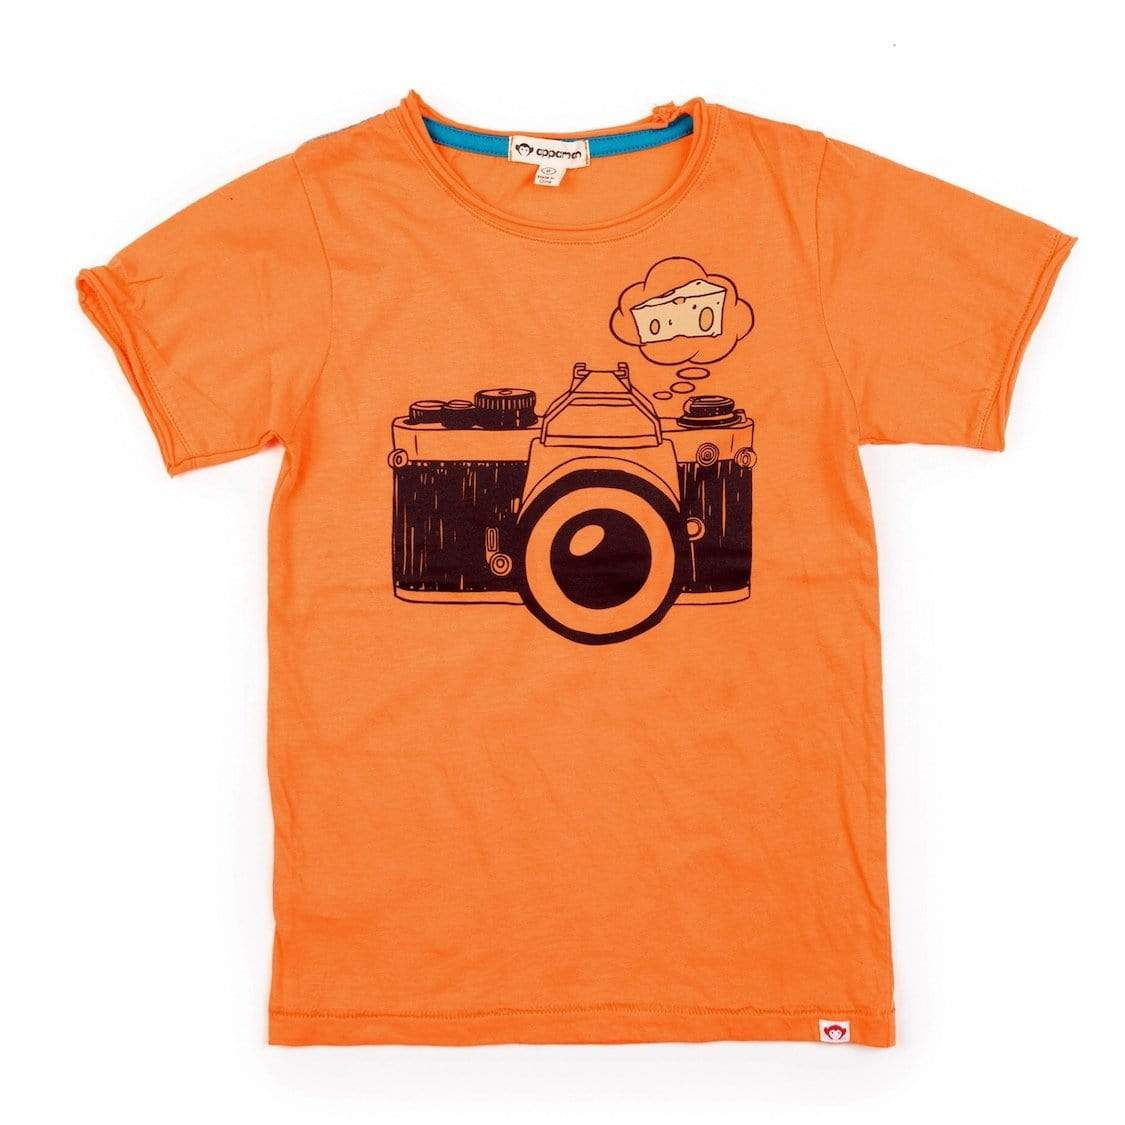 V1T8 Appaman Say Cheese Graphic Tee - Nectarine Short Sleeve Shirts Appaman